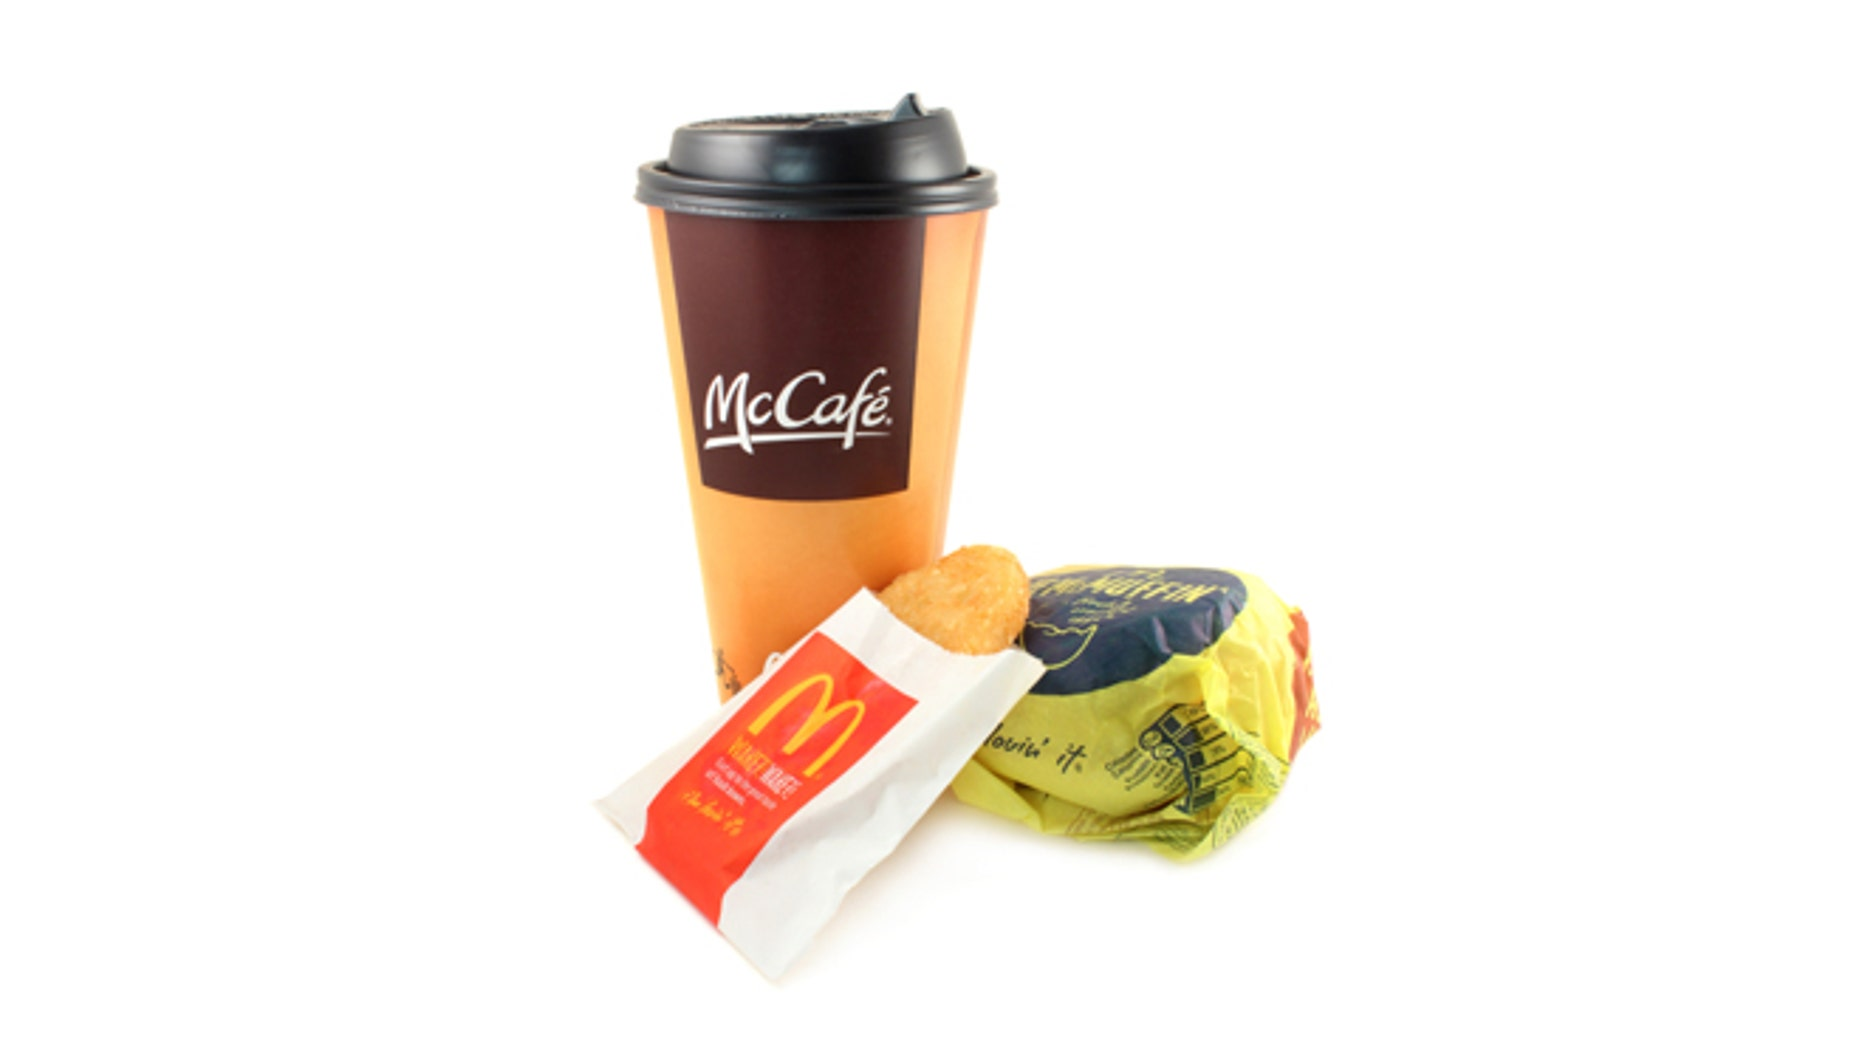 McDonald's breakfast will feature all cage-free eggs by 2025.